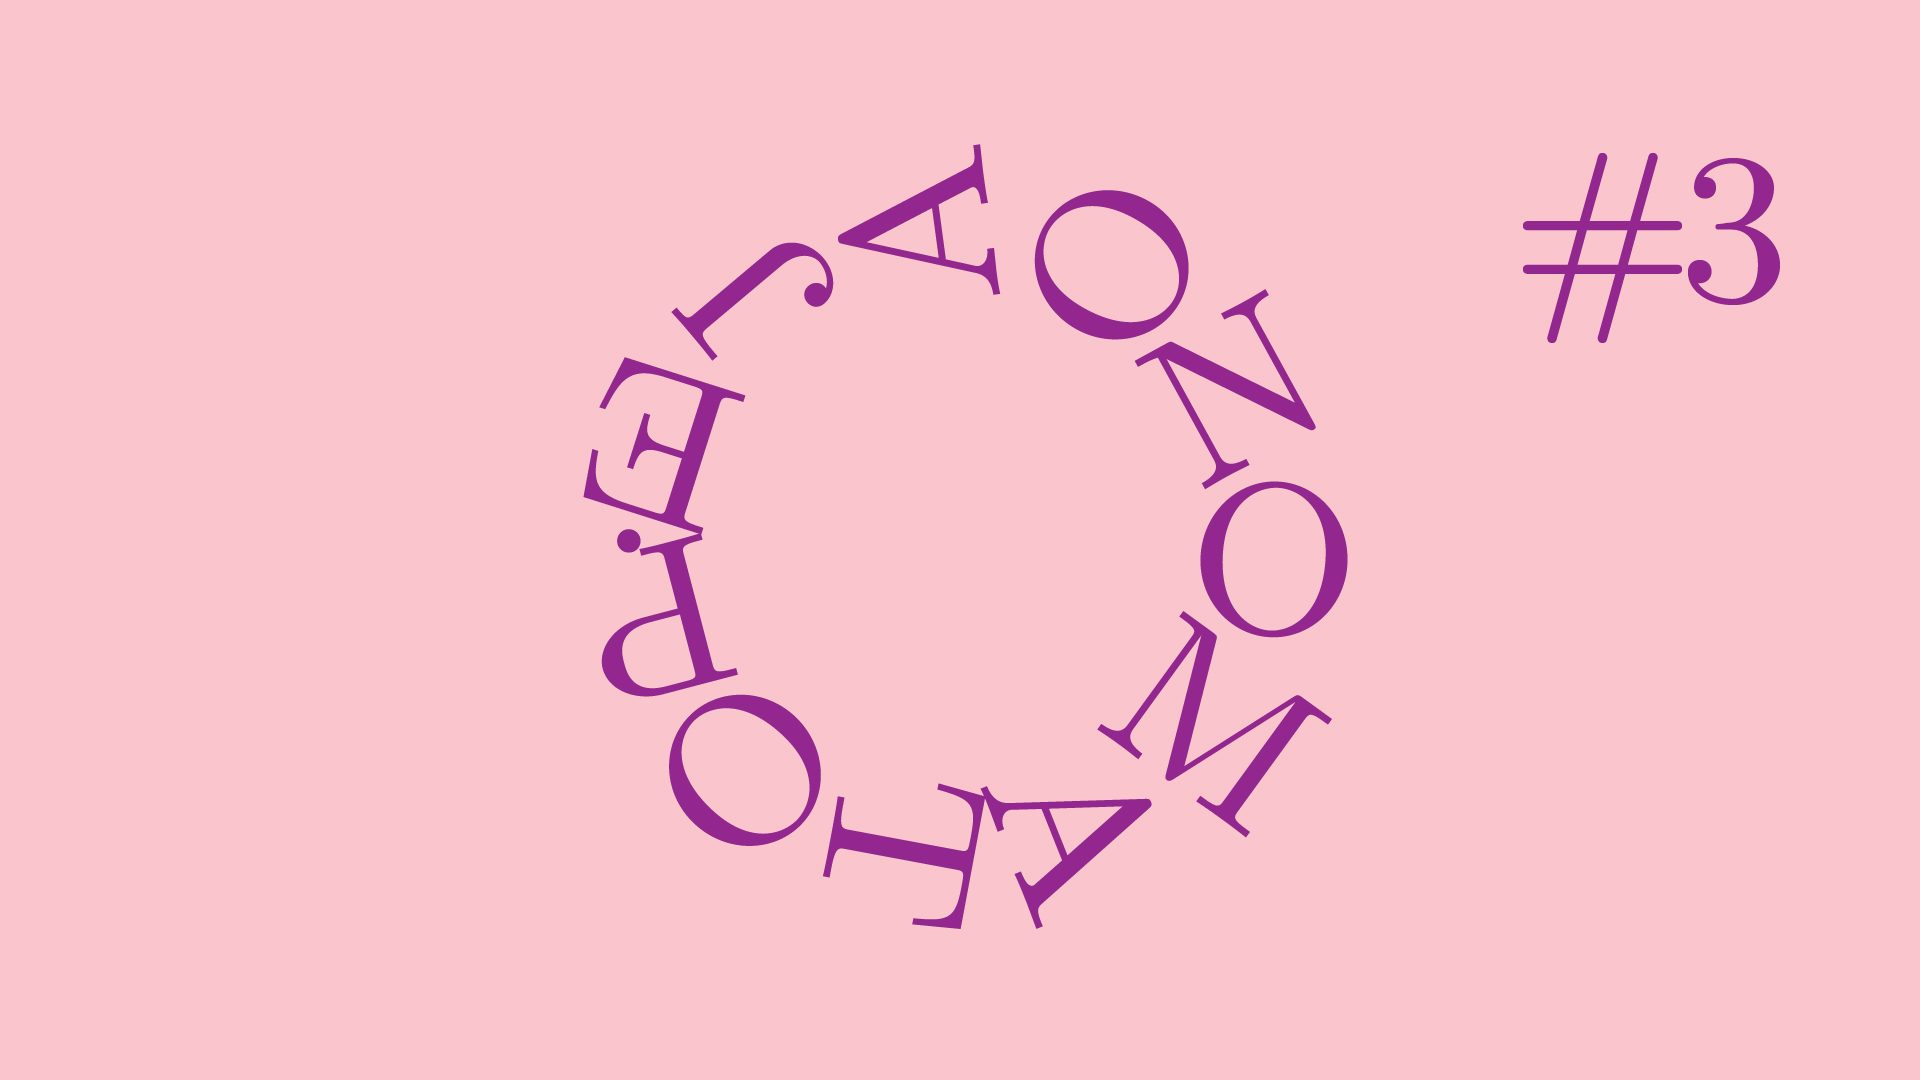 The third 'Onomatopoeia' show is a live improvisation by Laima Kreivytė and Migloko on the theme of a woman's voice and sound experiences. Siren voices, forest sounds, howls and horoscopes on rasuradijas.lt, Wednesday, July 28th, 8PM!